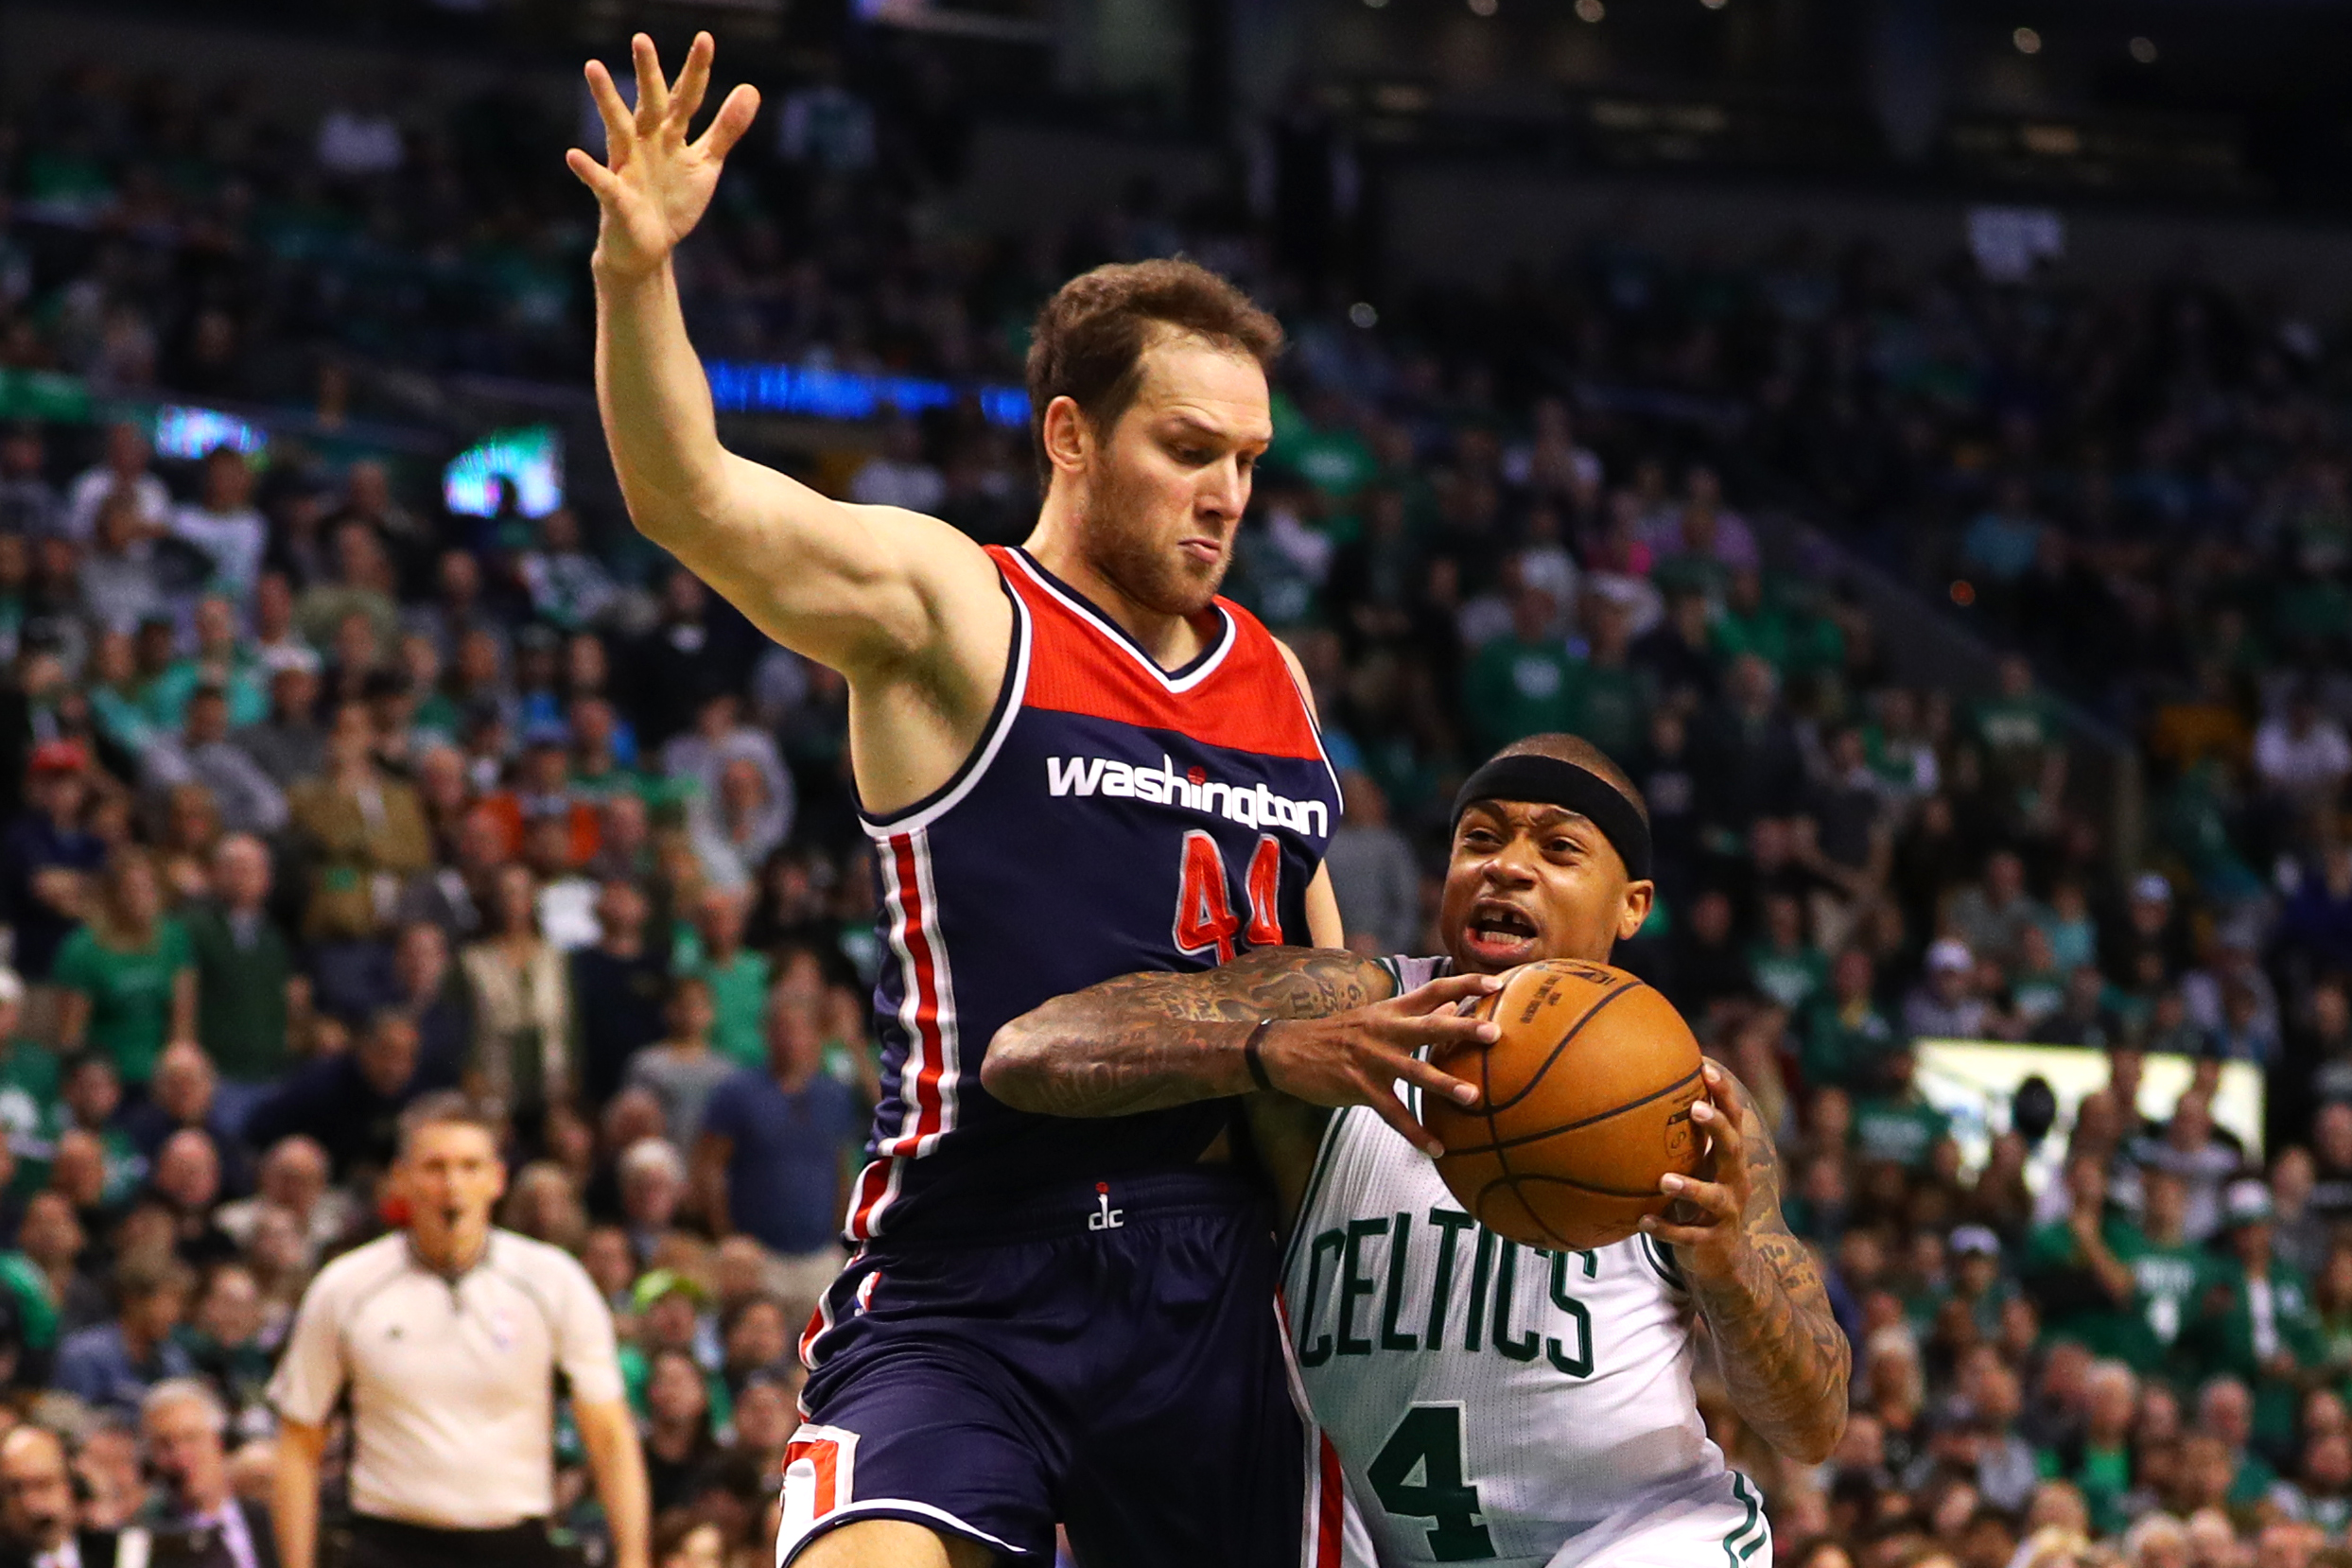 680455708-washington-wizards-v-boston-celtics-game-one.jpg